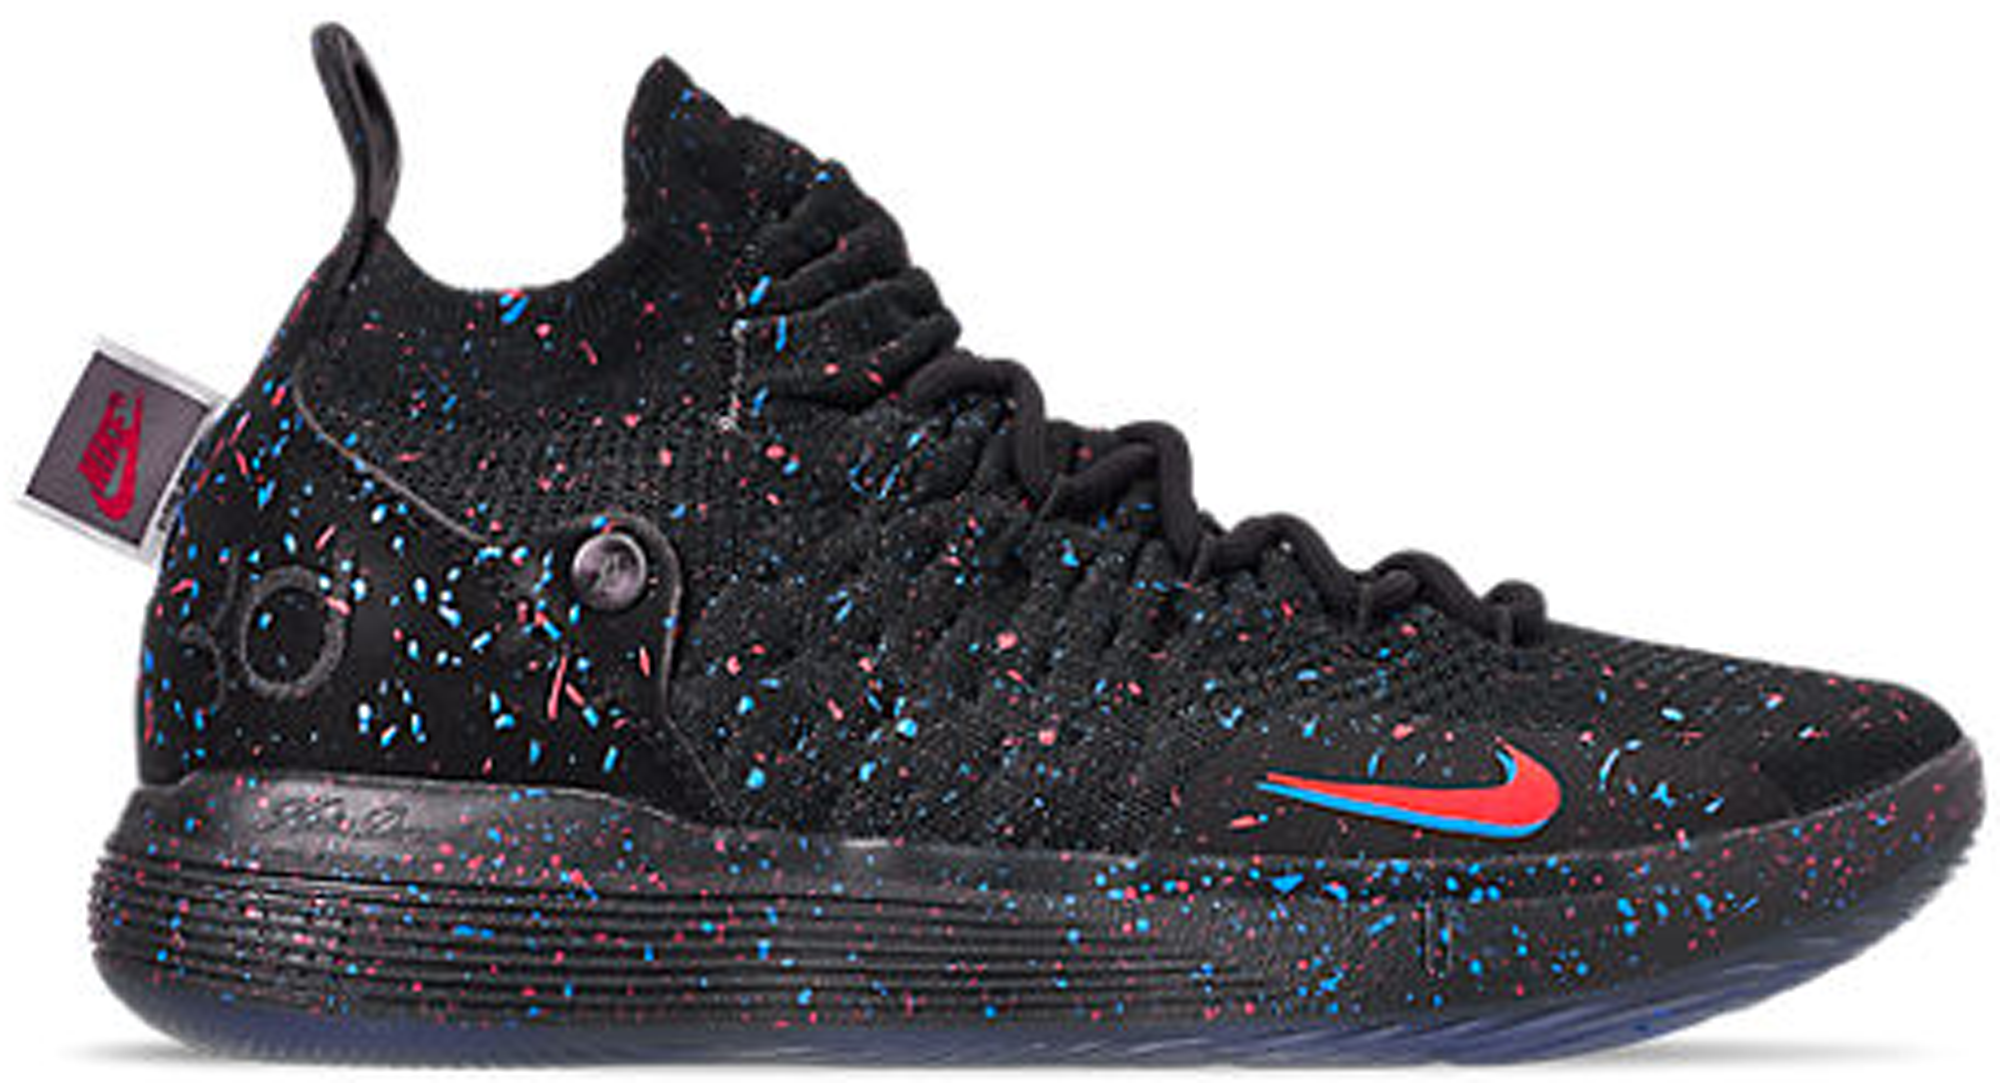 KD 11 Just Do It